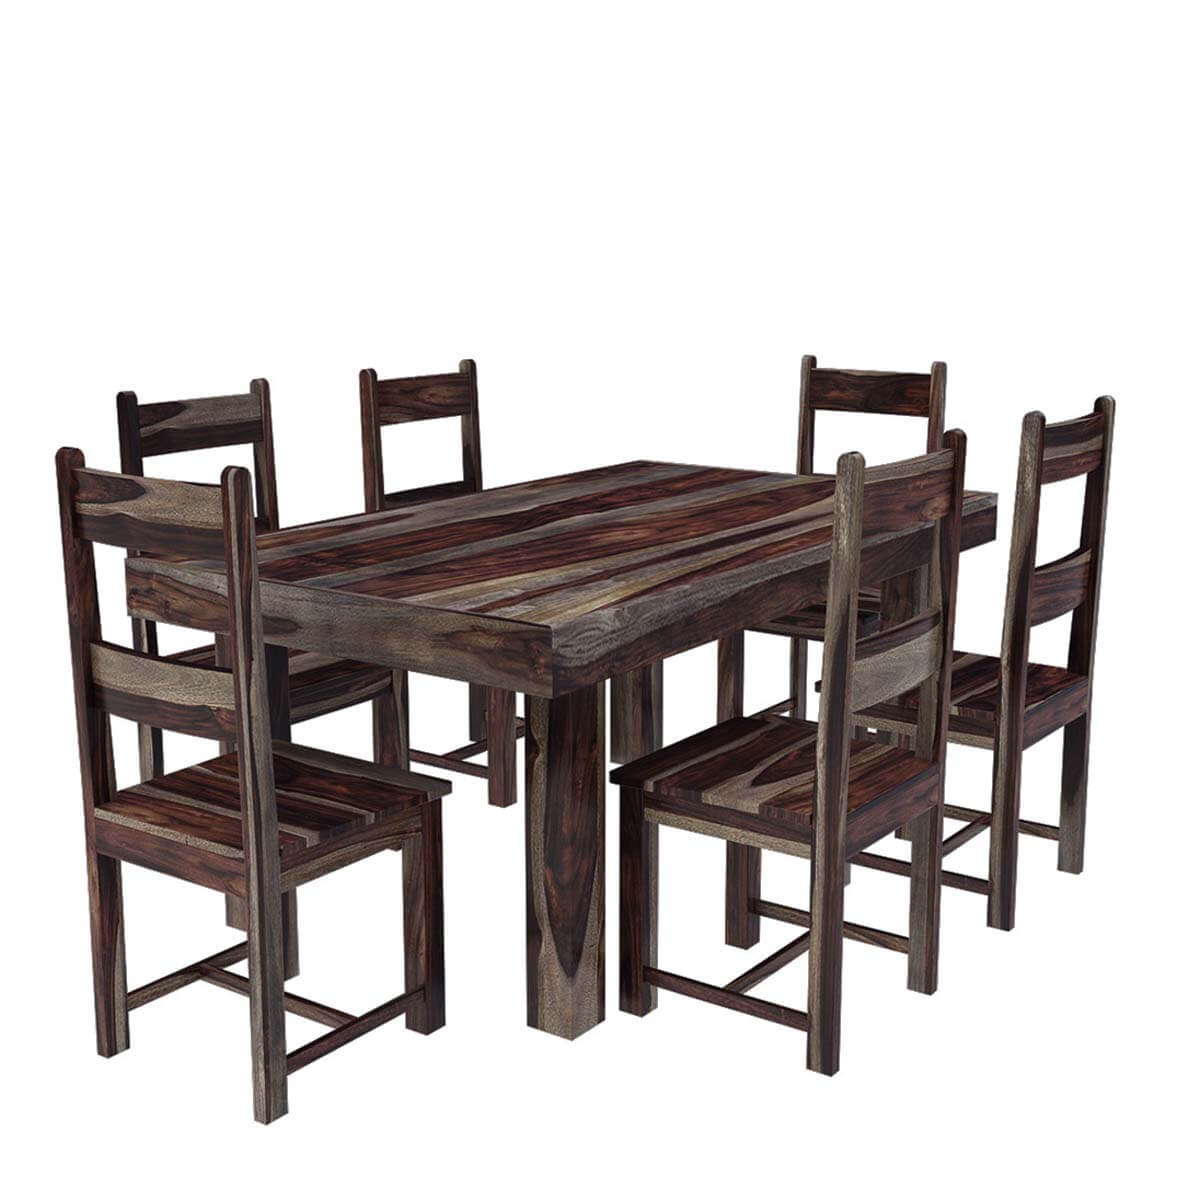 Frisco modern solid wood casual rustic dining room table for Wooden dining table chairs